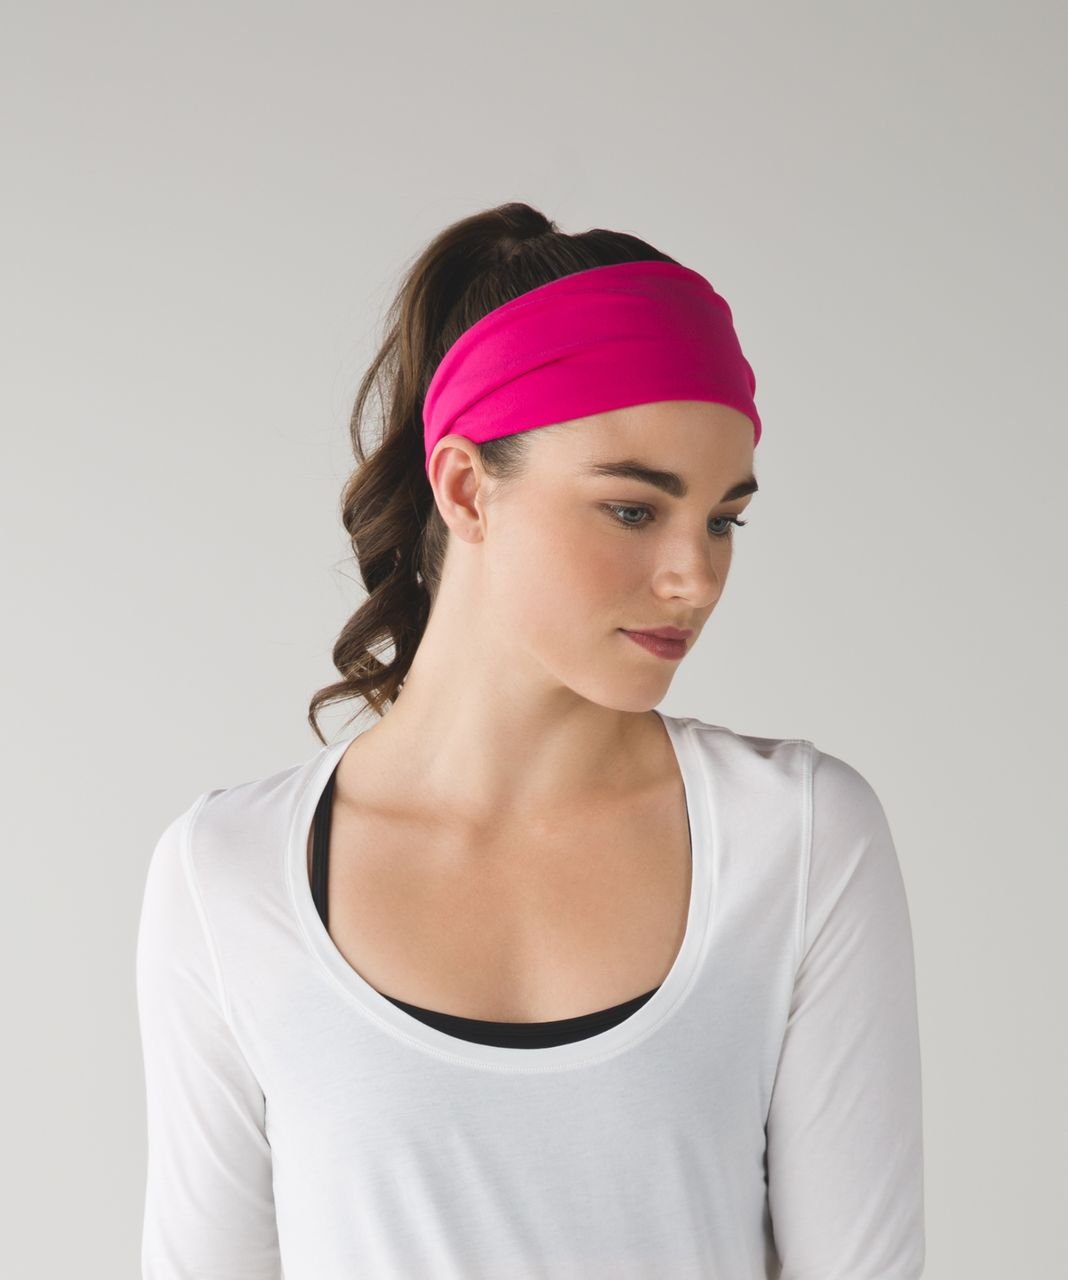 Lululemon Fringe Fighter Headband - Jewelled Magenta / Heathered Berry Rumble